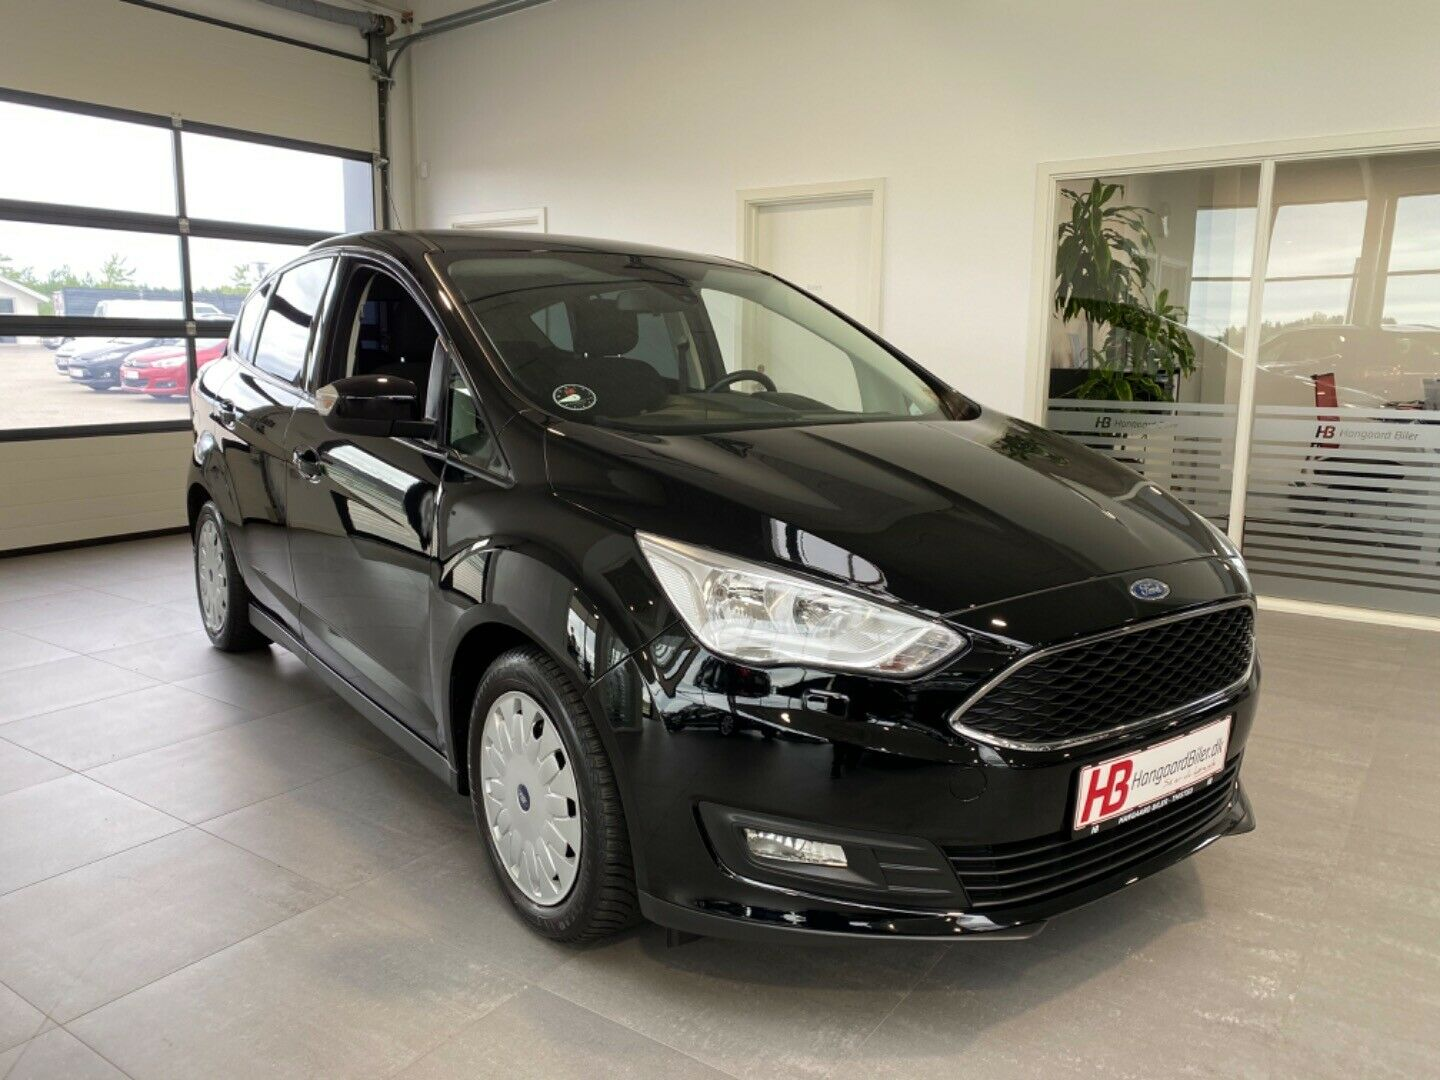 Ford C-MAX 1,5 TDCi 105 Business ECO 5d - 124.800 kr.